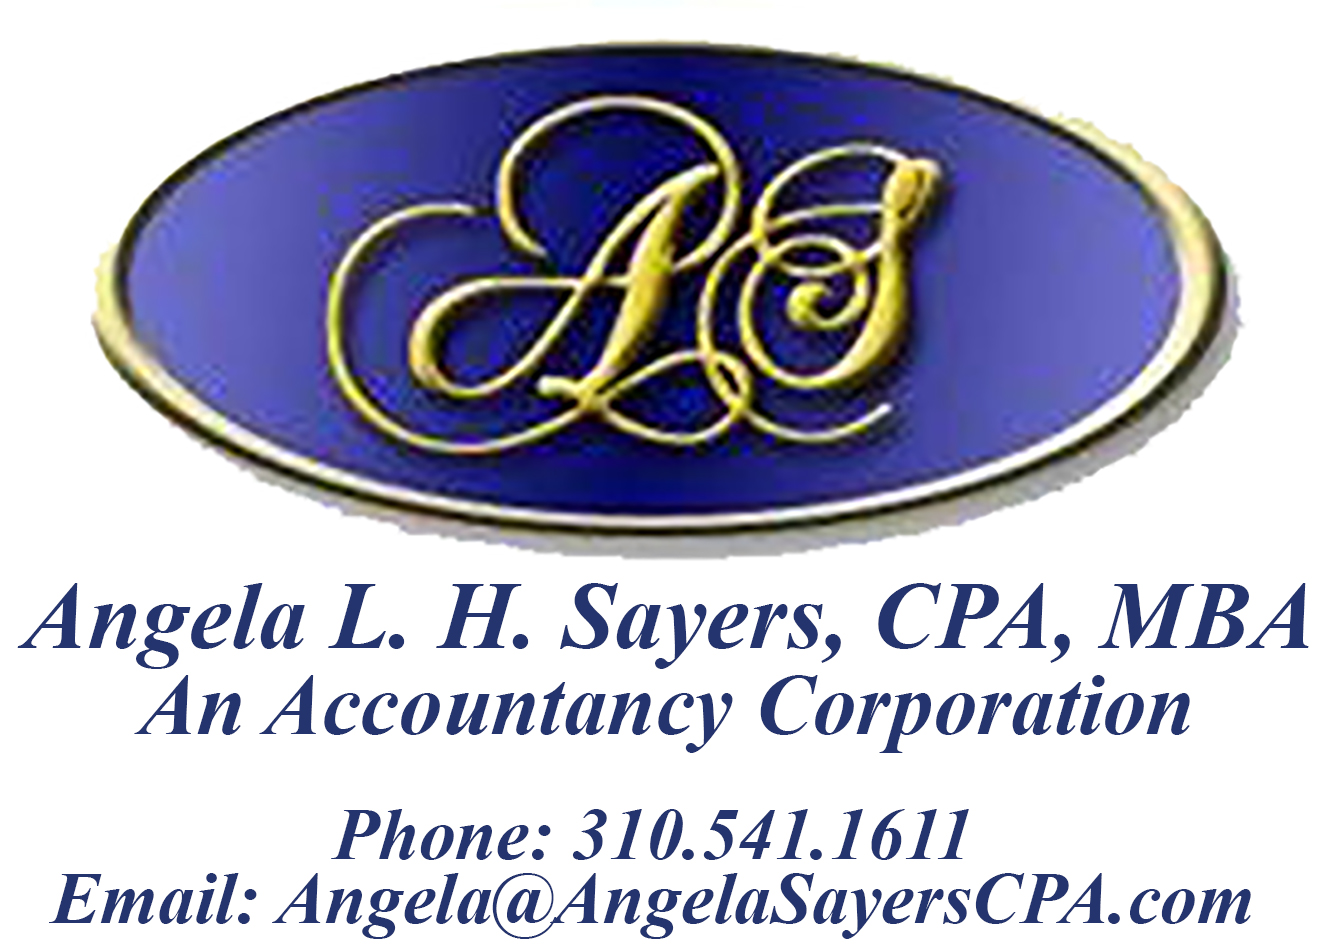 Angela L. H. Sayers, CPA logo, phone and email address